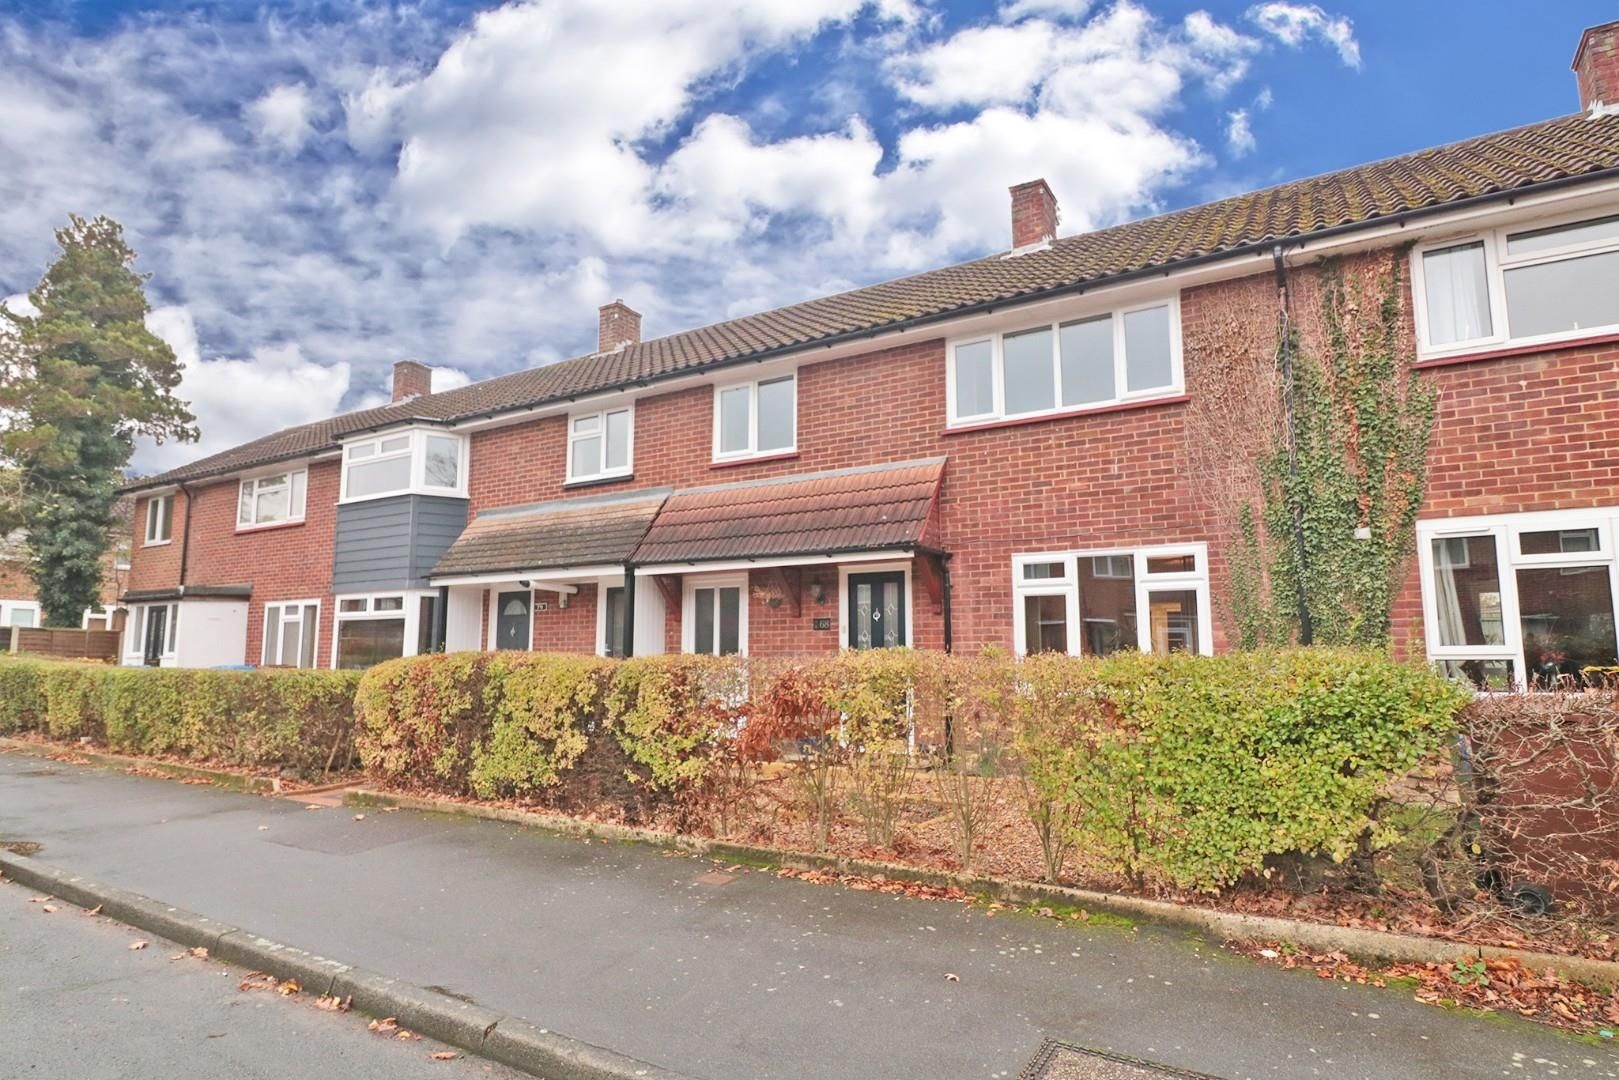 3 bed house for sale in Priestwood, RG42